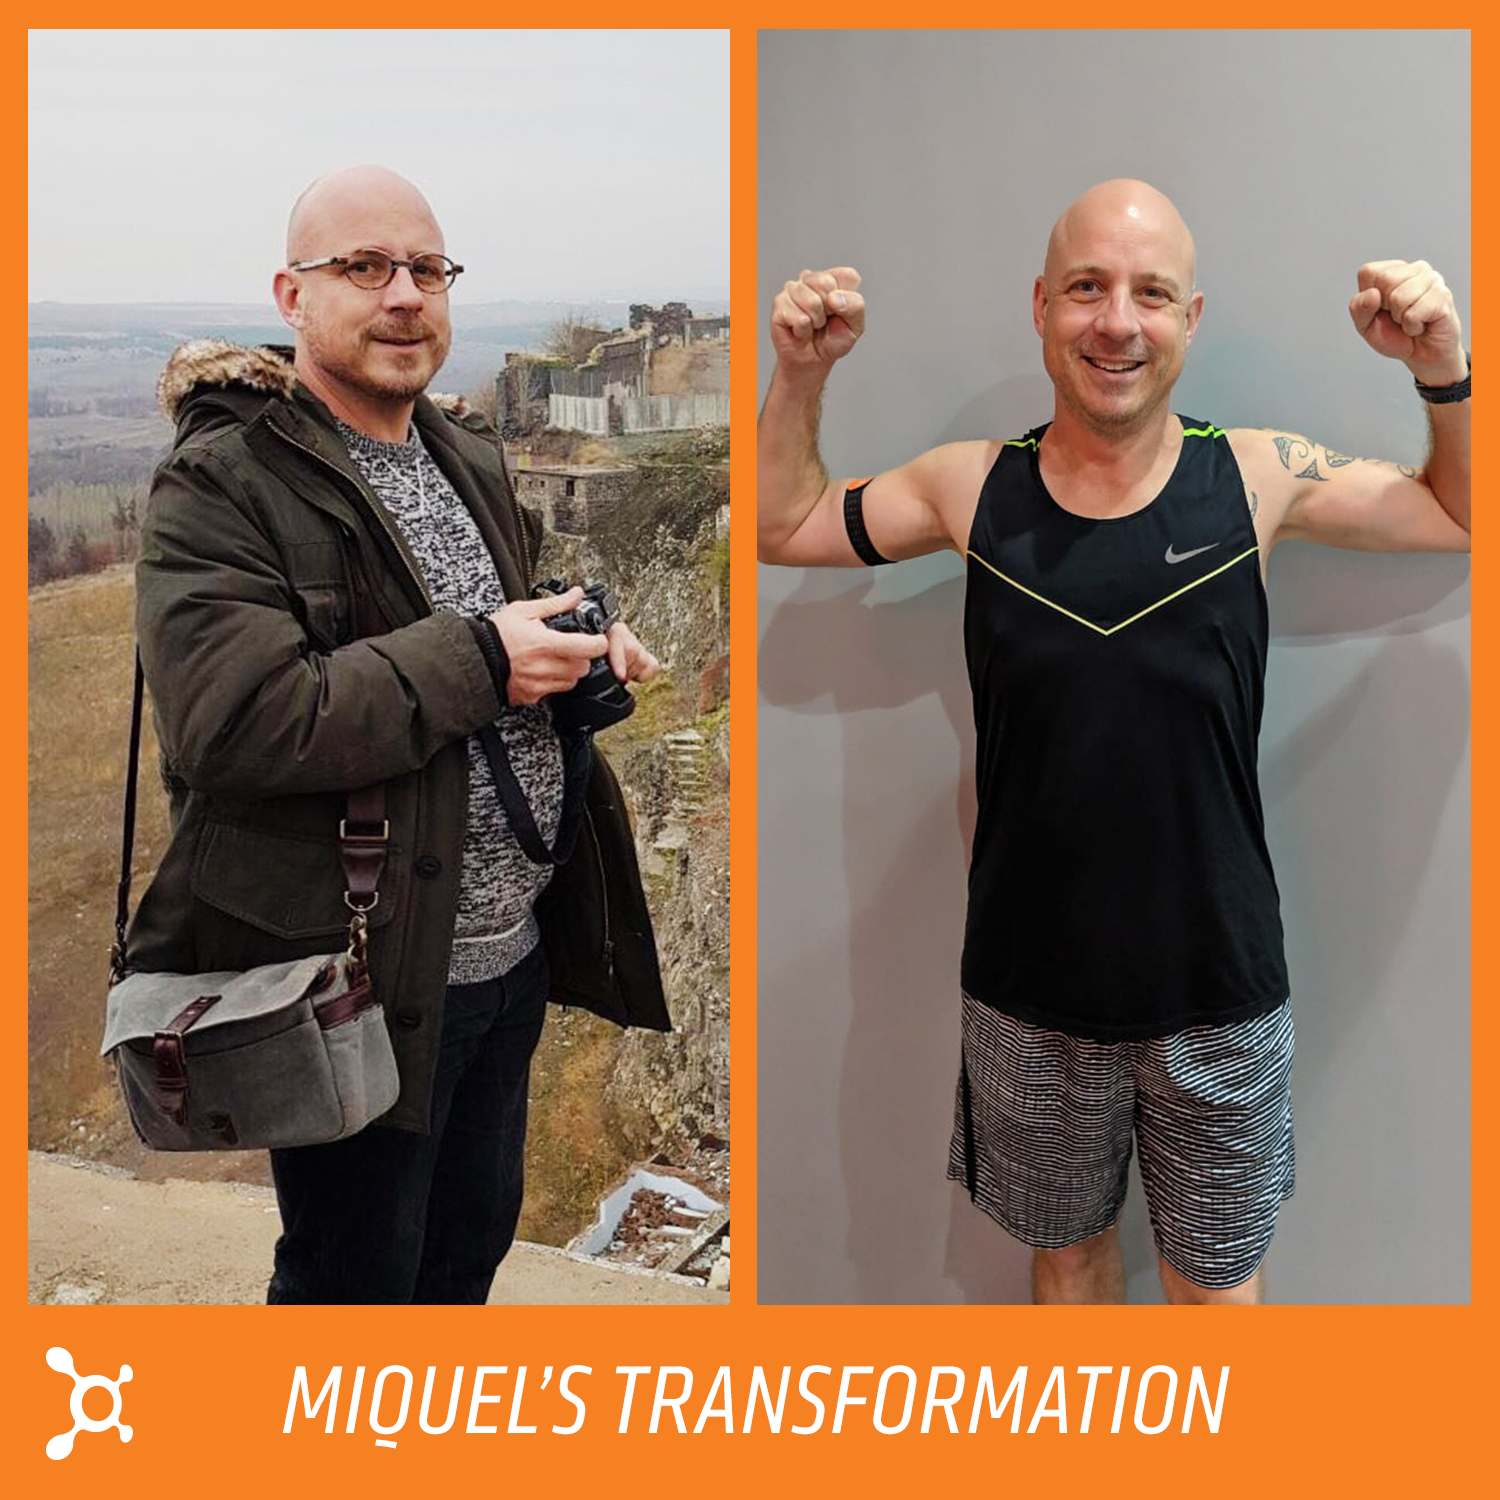 Miquel transformation.jpg